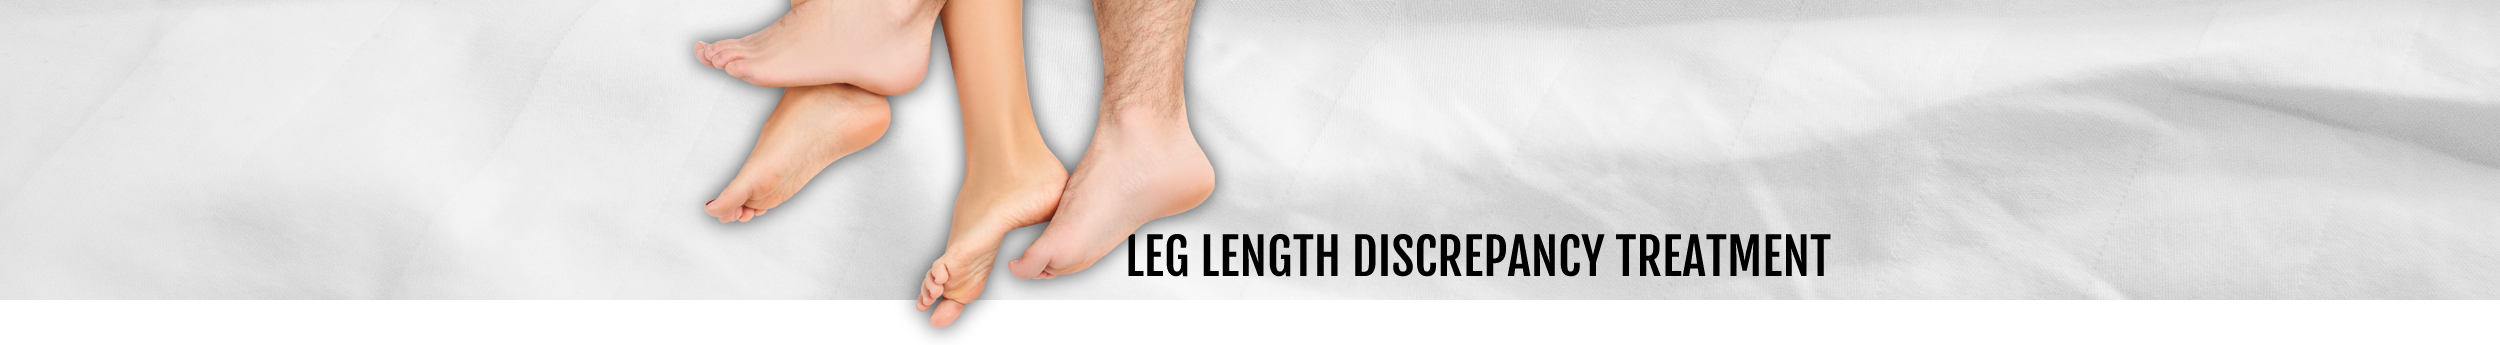 Leg length discrepancy treatment header for the Walk IN Foot Clinic in central London